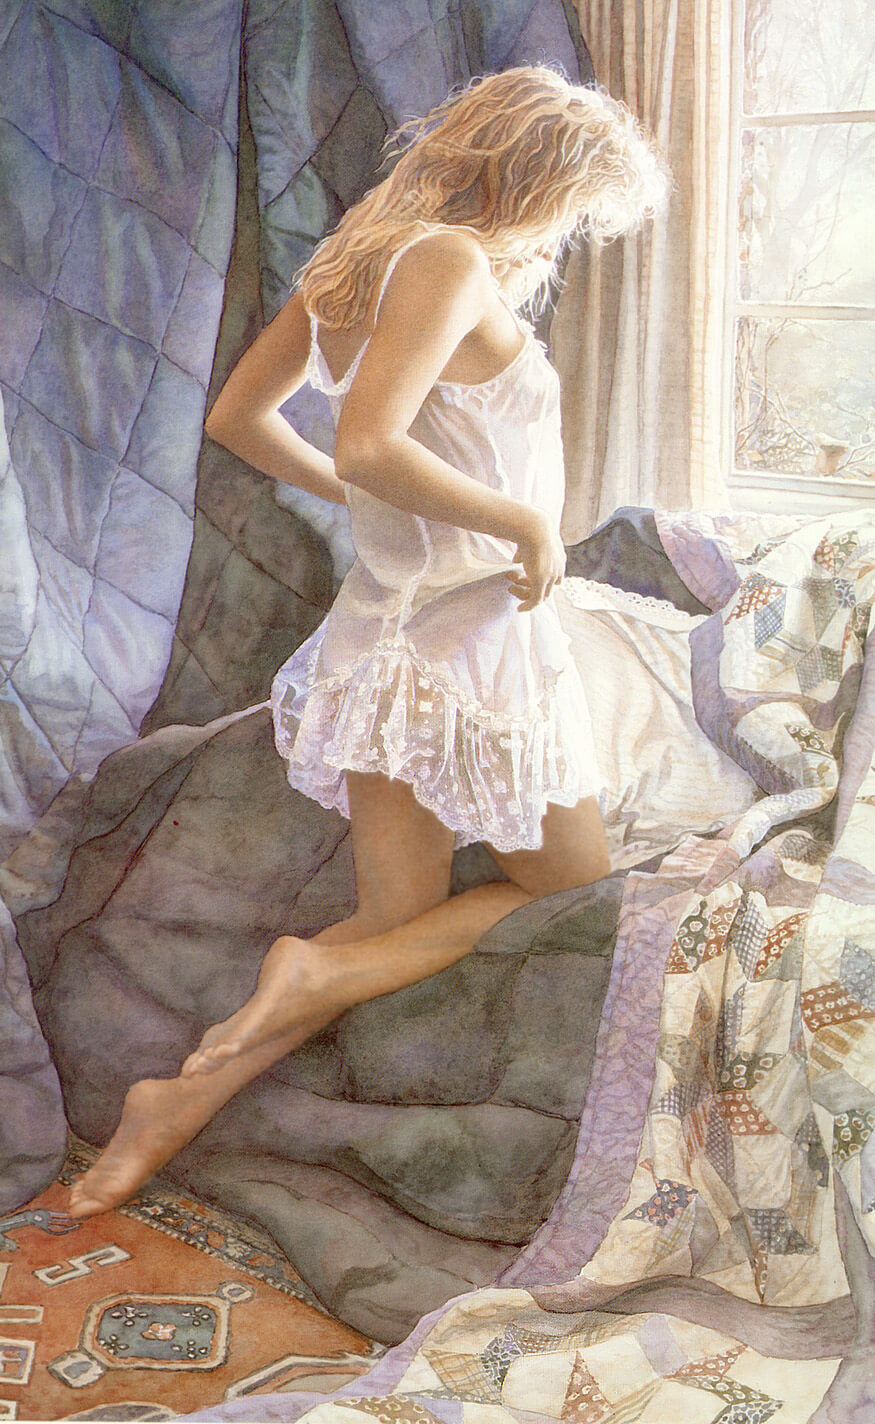 A Winters Day, by Traditional Artist Steve Hanks